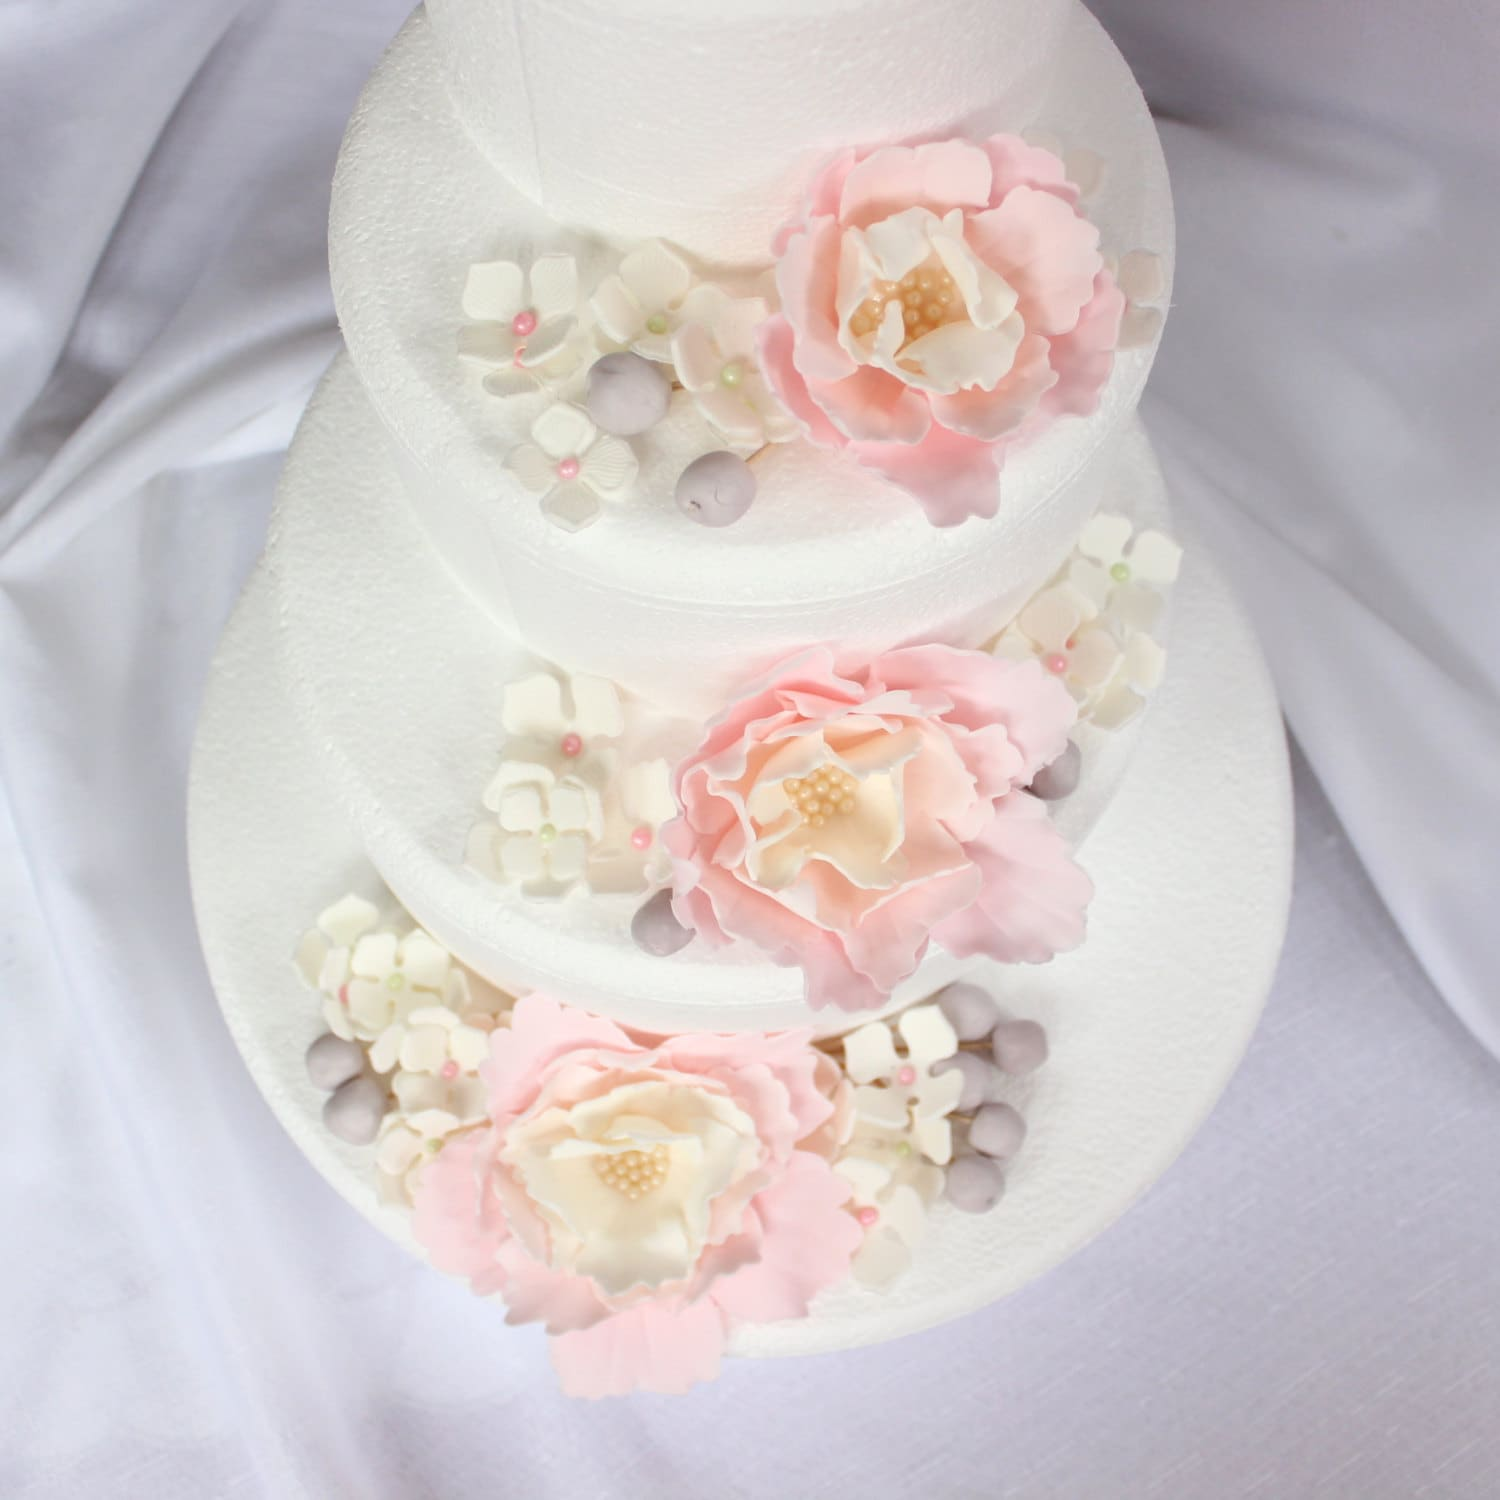 Wedding Cake Flowers Edible: Wedding Cake Flowers 51pcs Topper Edible Fondant Flower